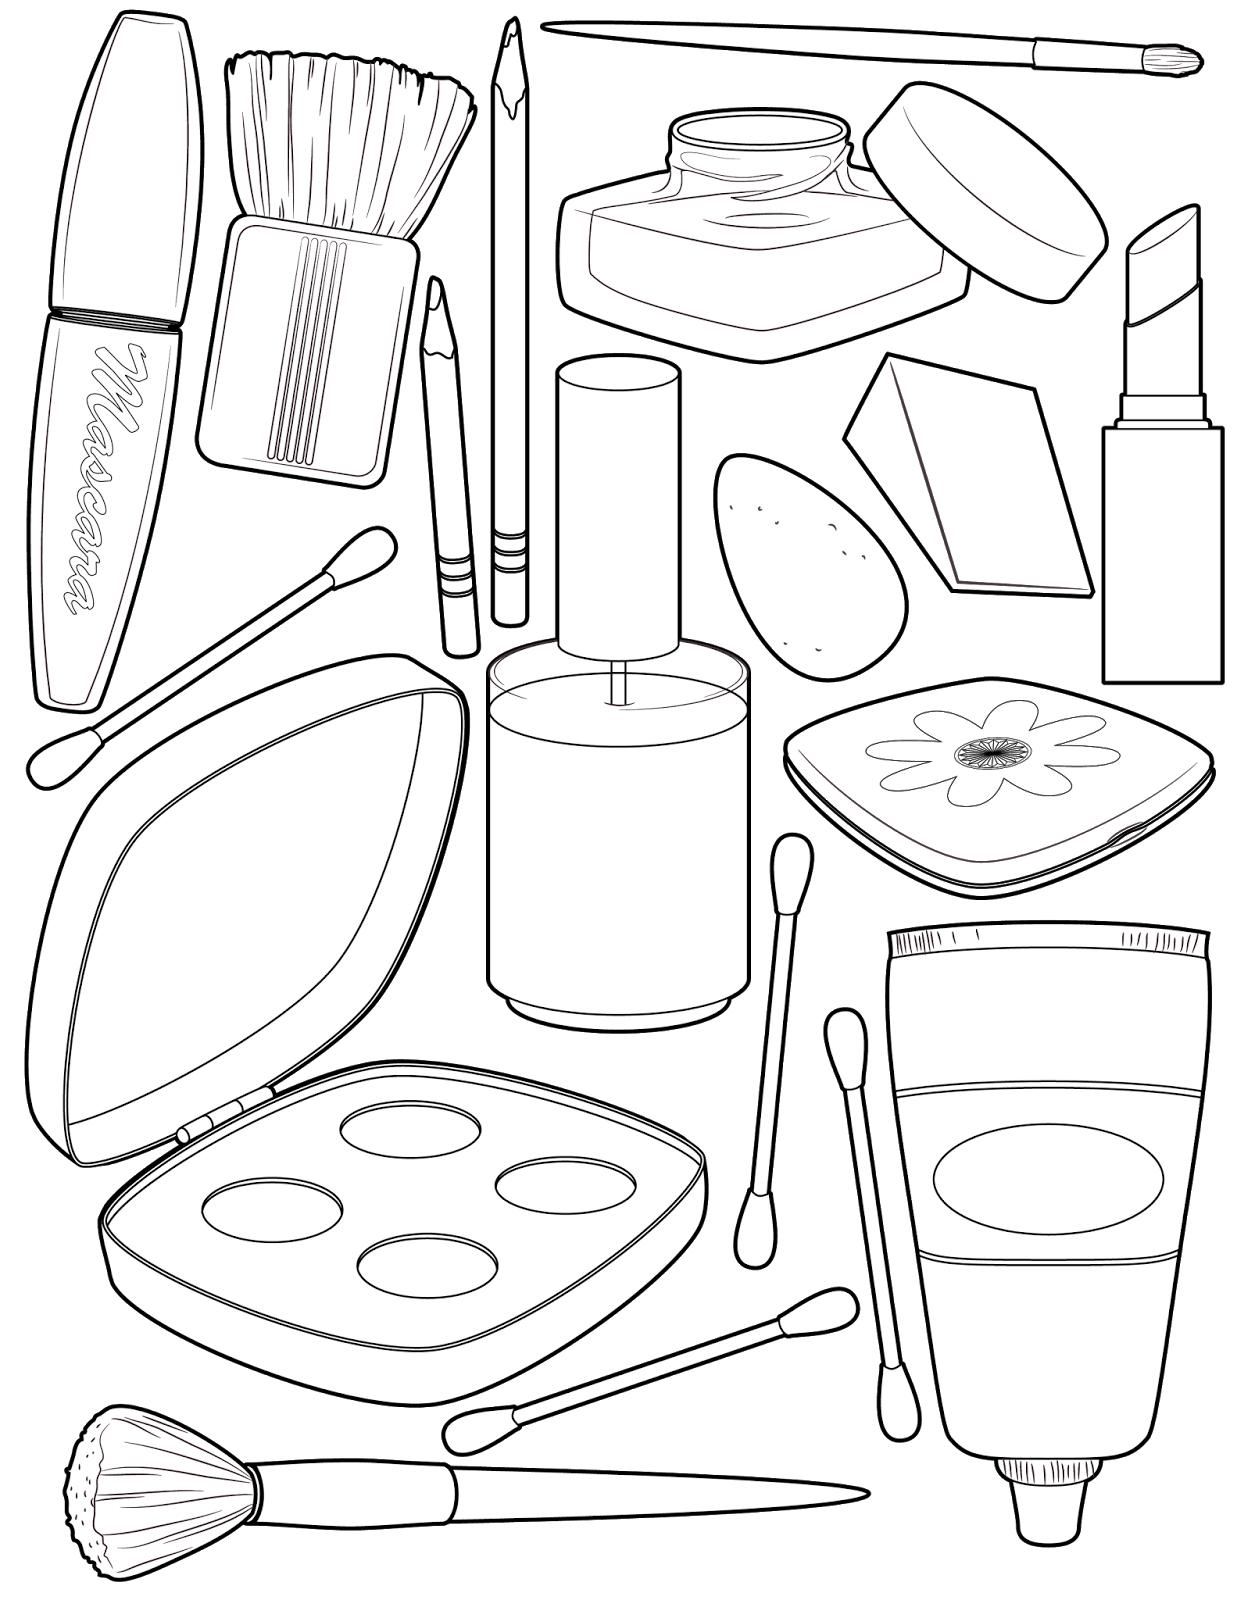 eyeshadow-coloring-page, grownup-coloring-page